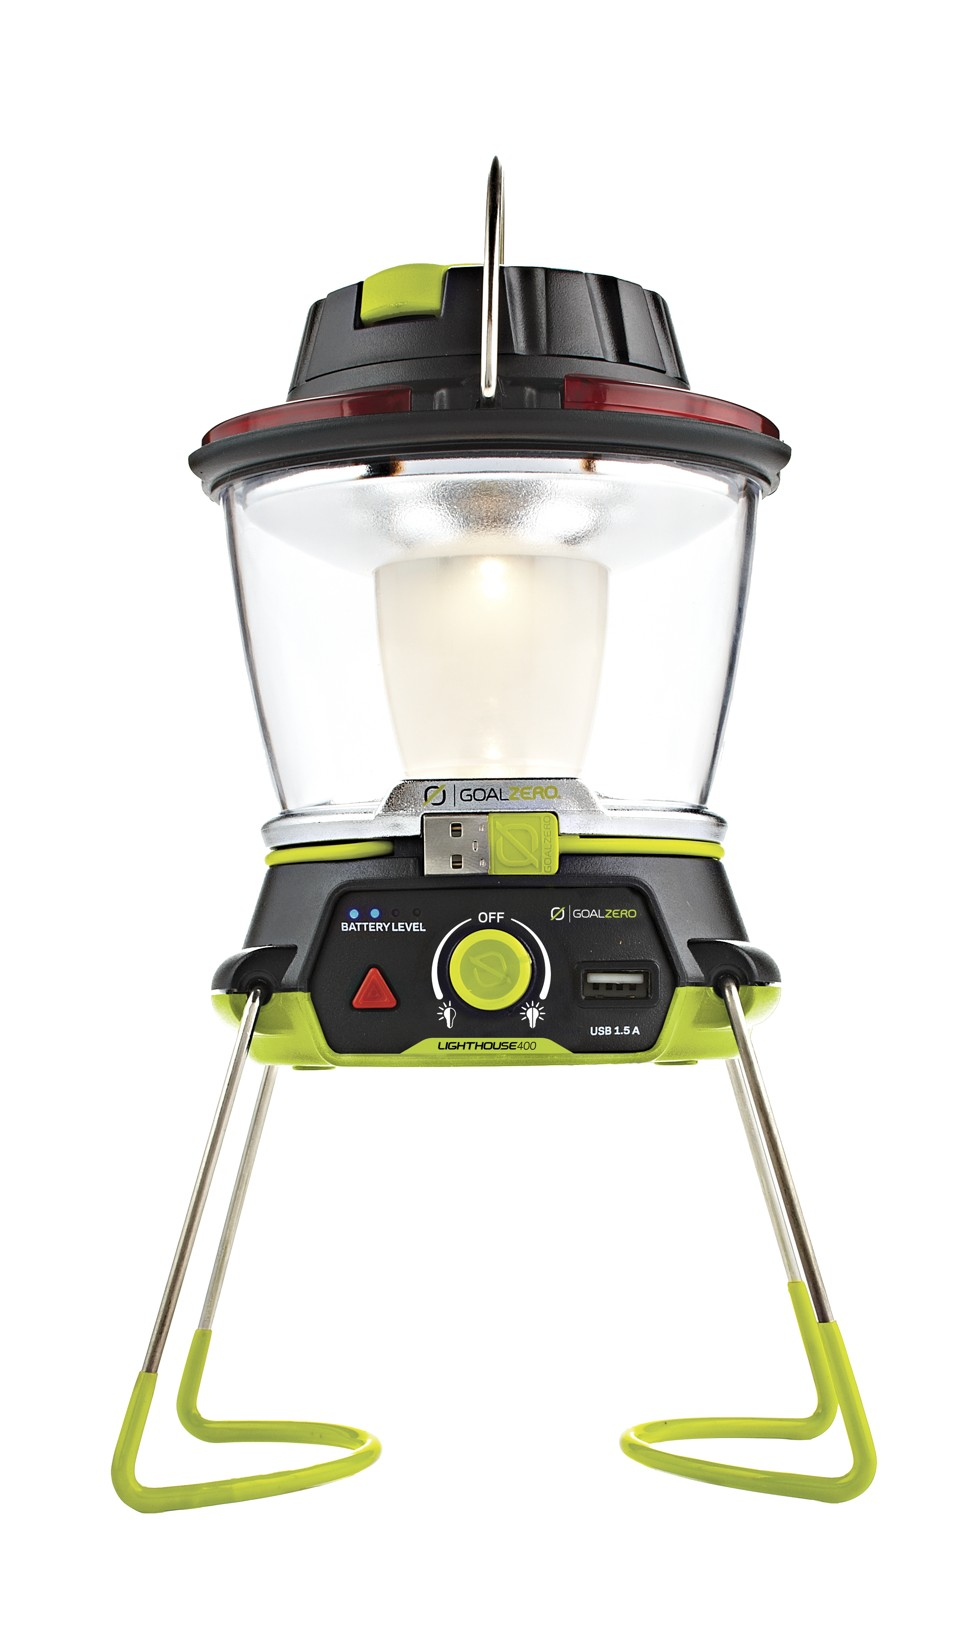 Seven Portable Solar Powered Lights For Camping Or At The